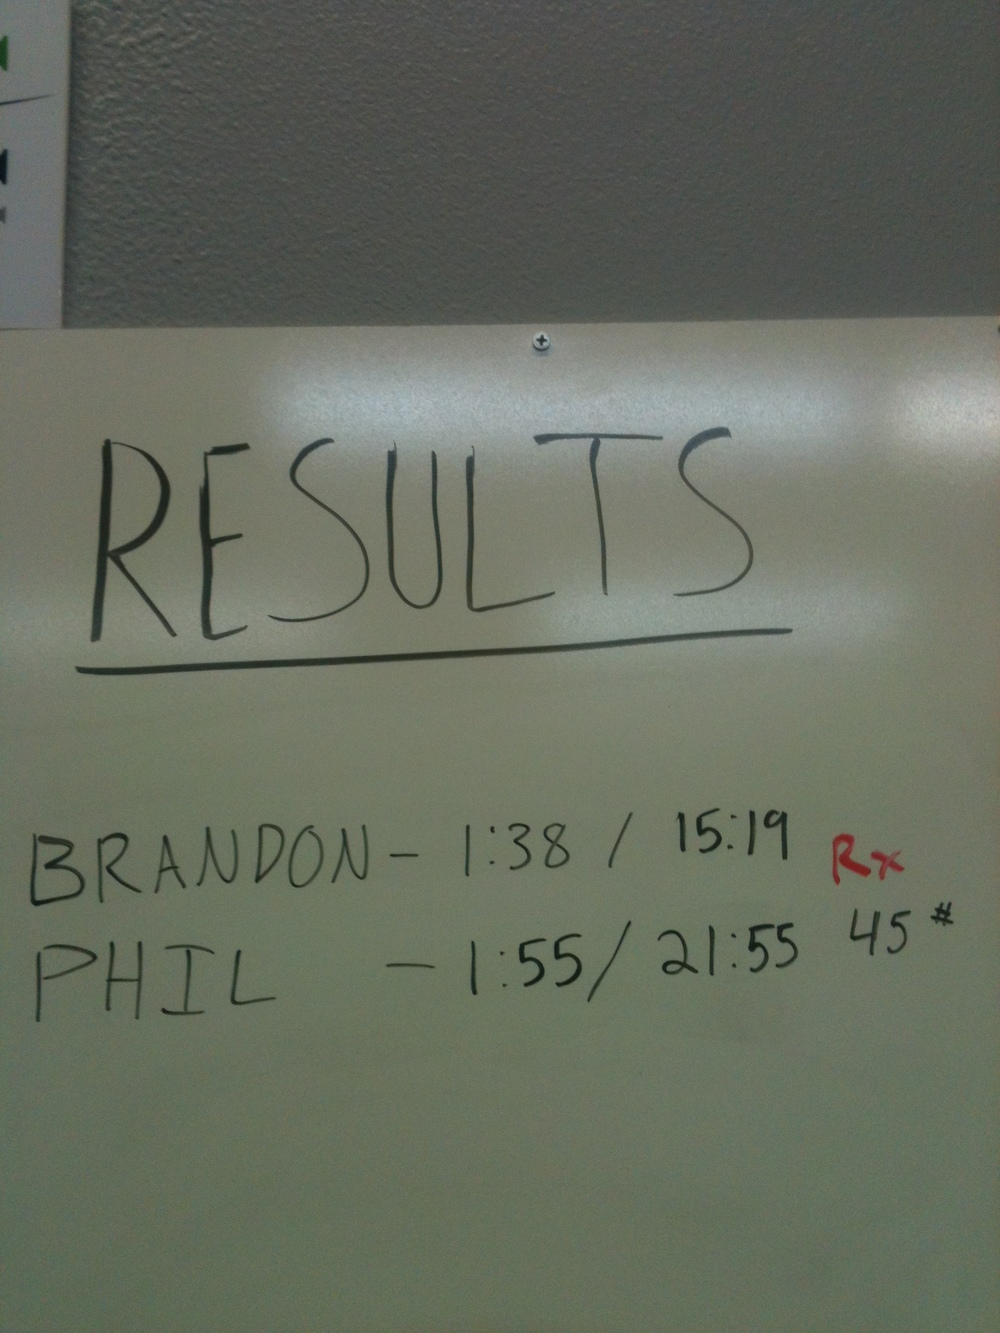 Results from Thursday, great job Brandon and Phil!